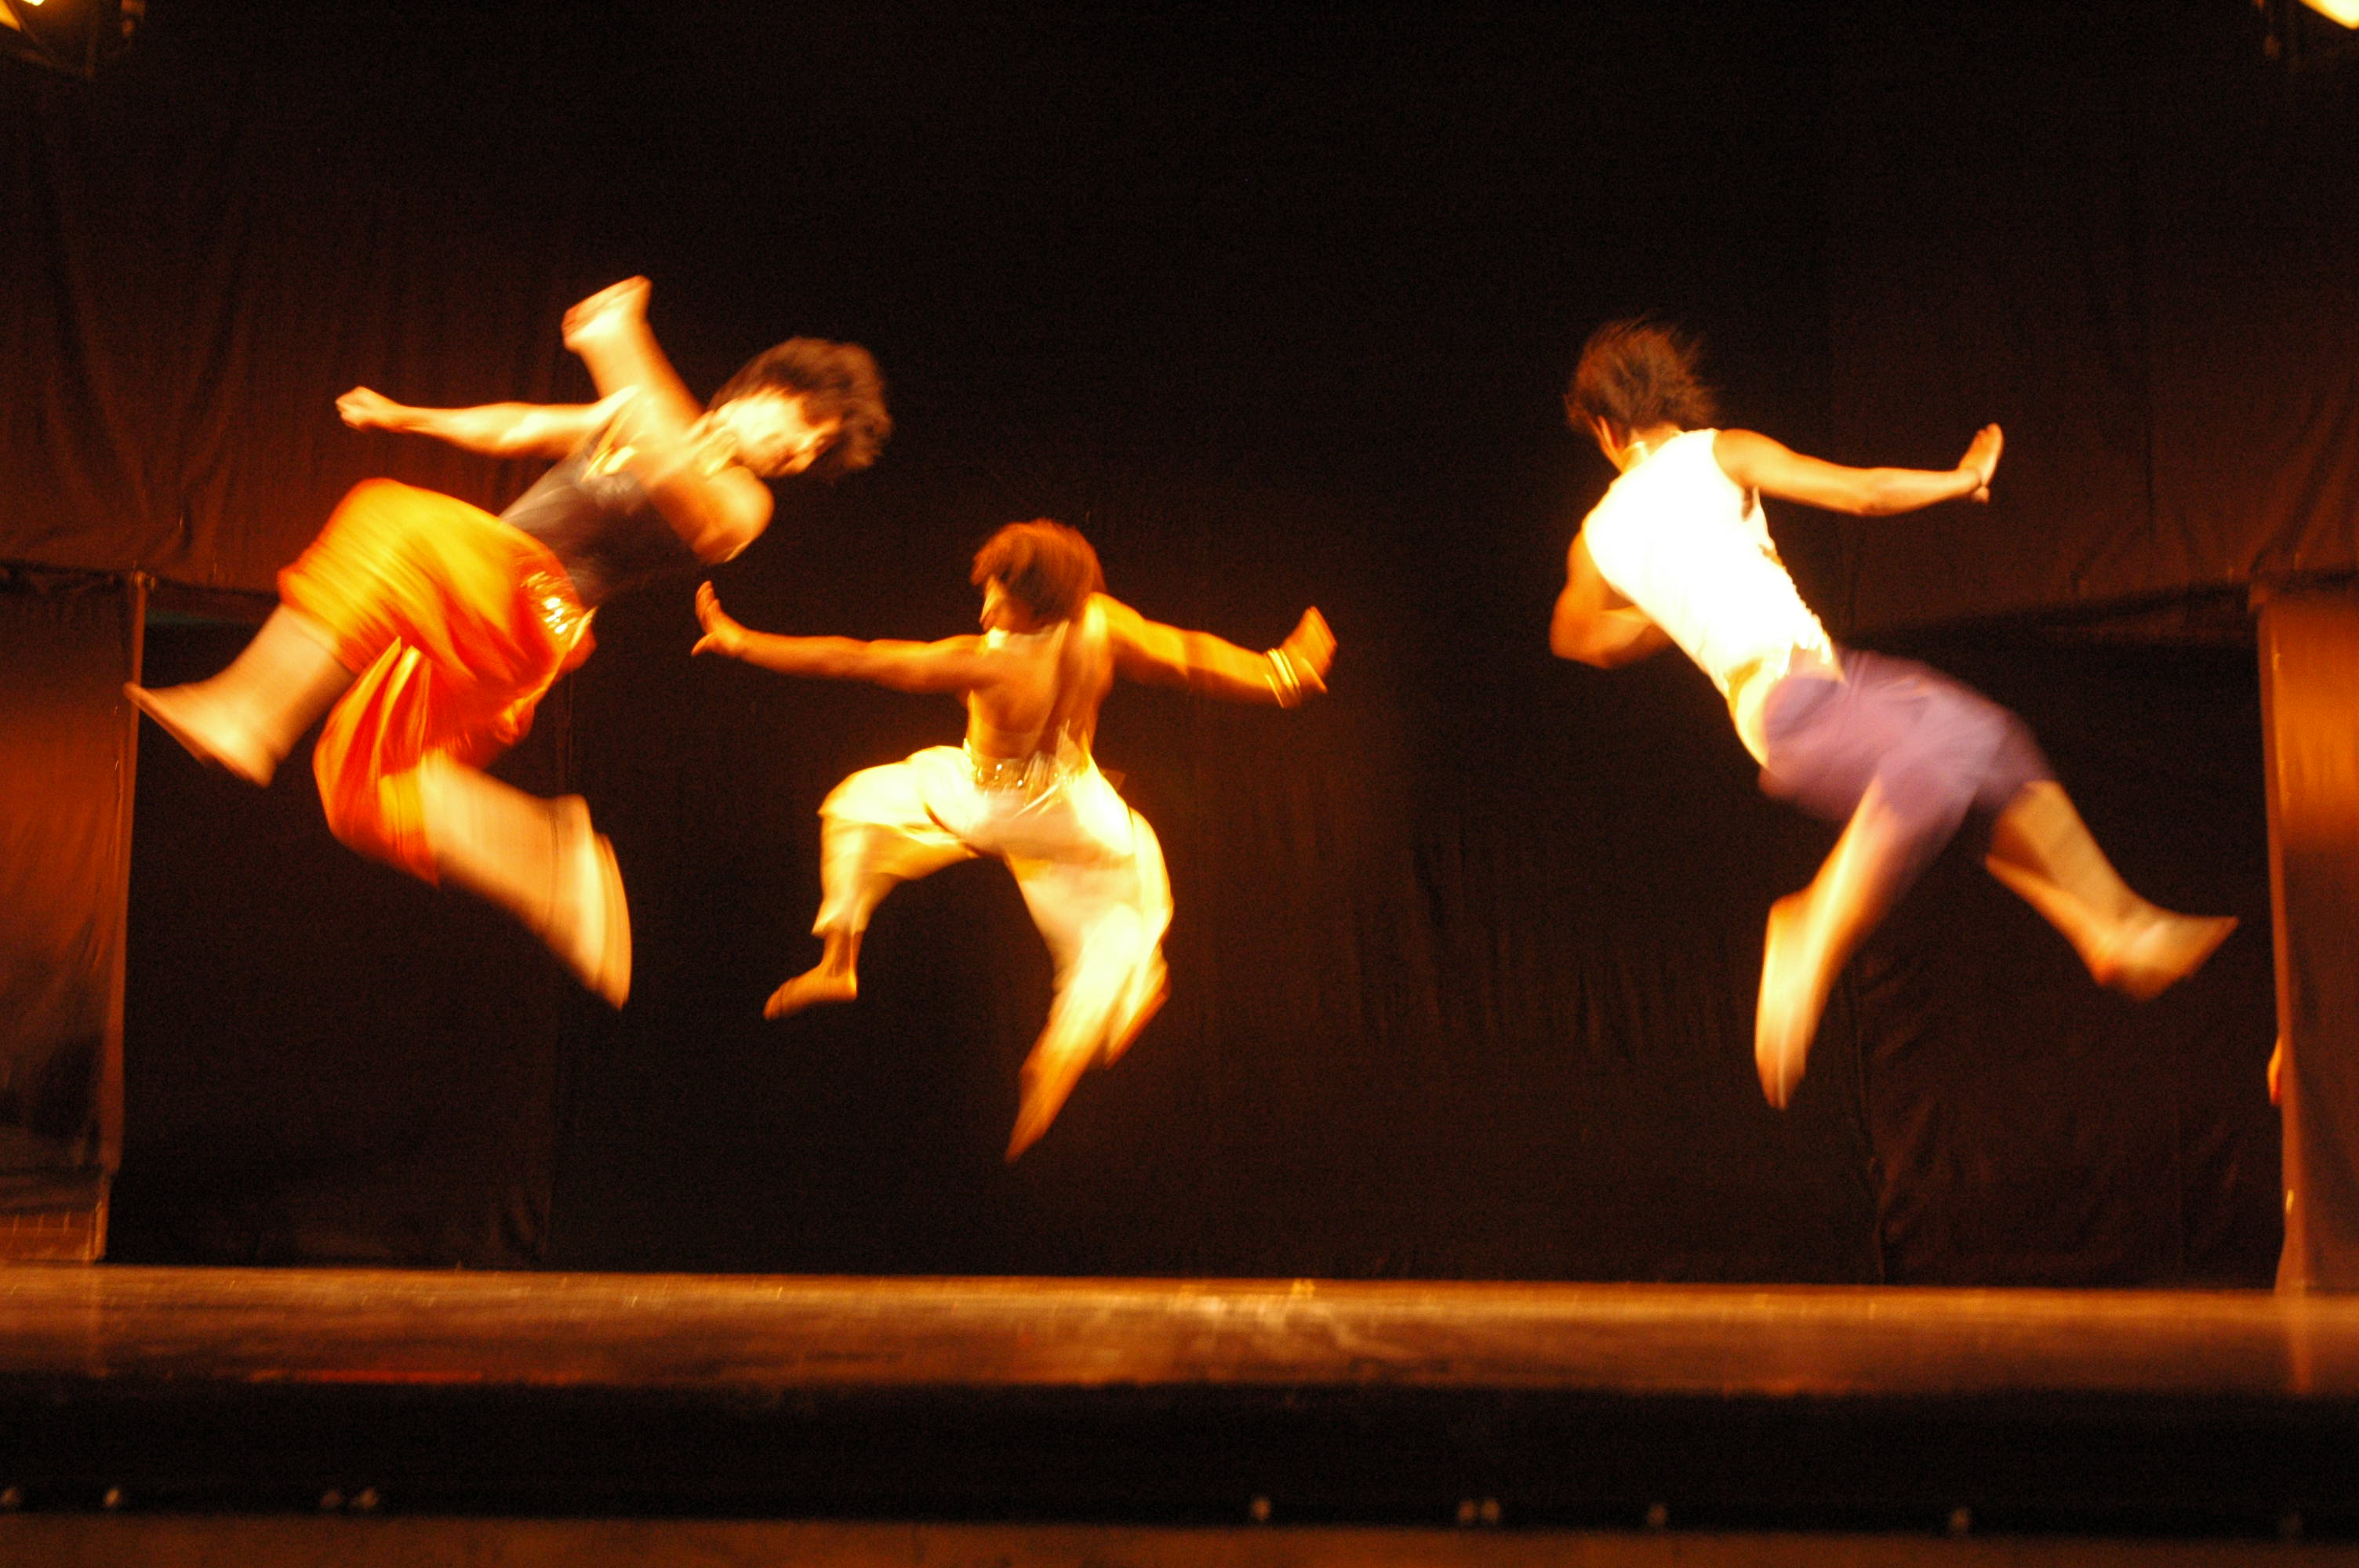 Chau, dance form with marshal art movements, Mayurbanj, India